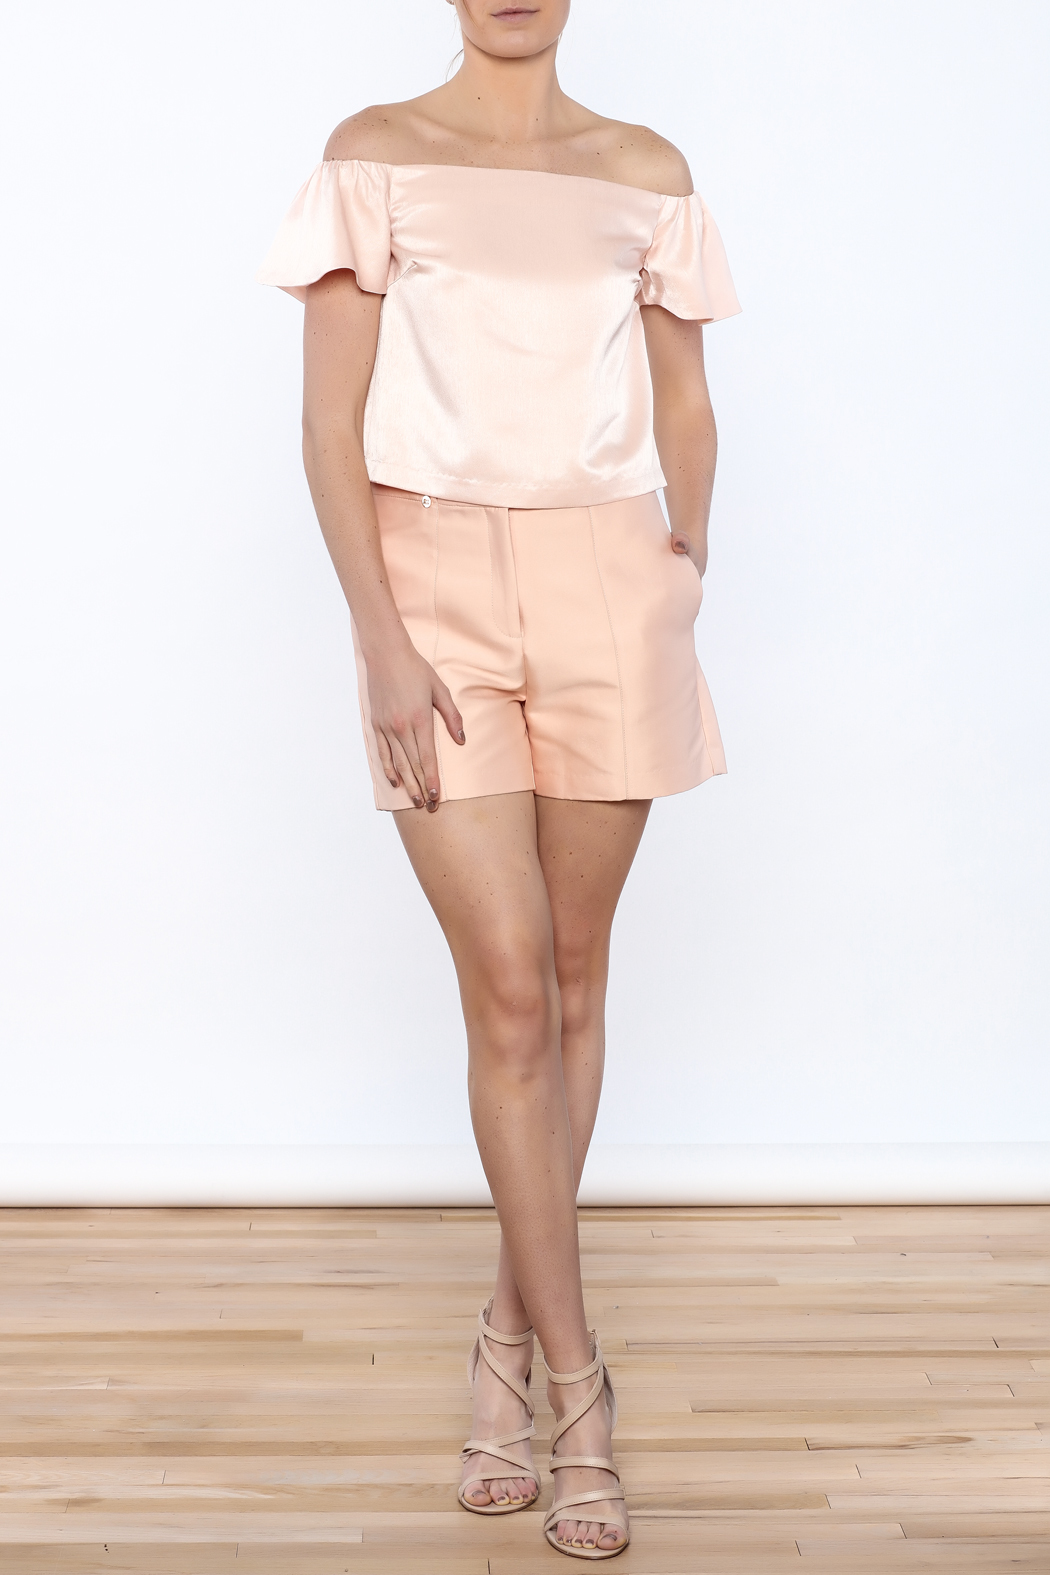 Lucy Paris Peachy Keen Top - Front Full Image